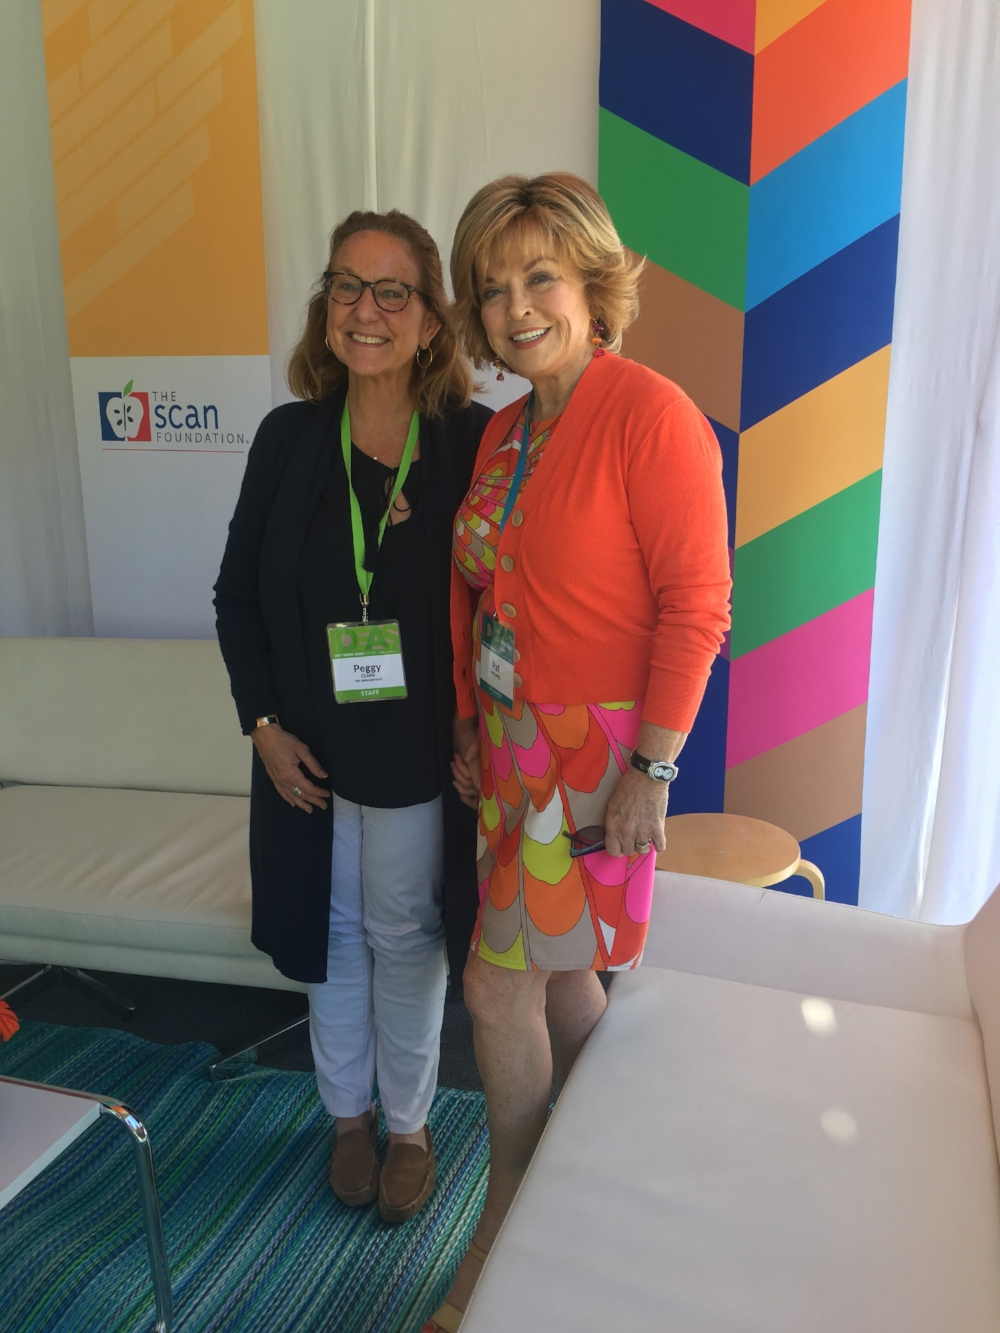 Peggy Clark hosted Aspen Institute's Ideas Festival focusing on health where I moderated panels and interviewed a number experts on philanthropy, education, sustainability and gender equality.